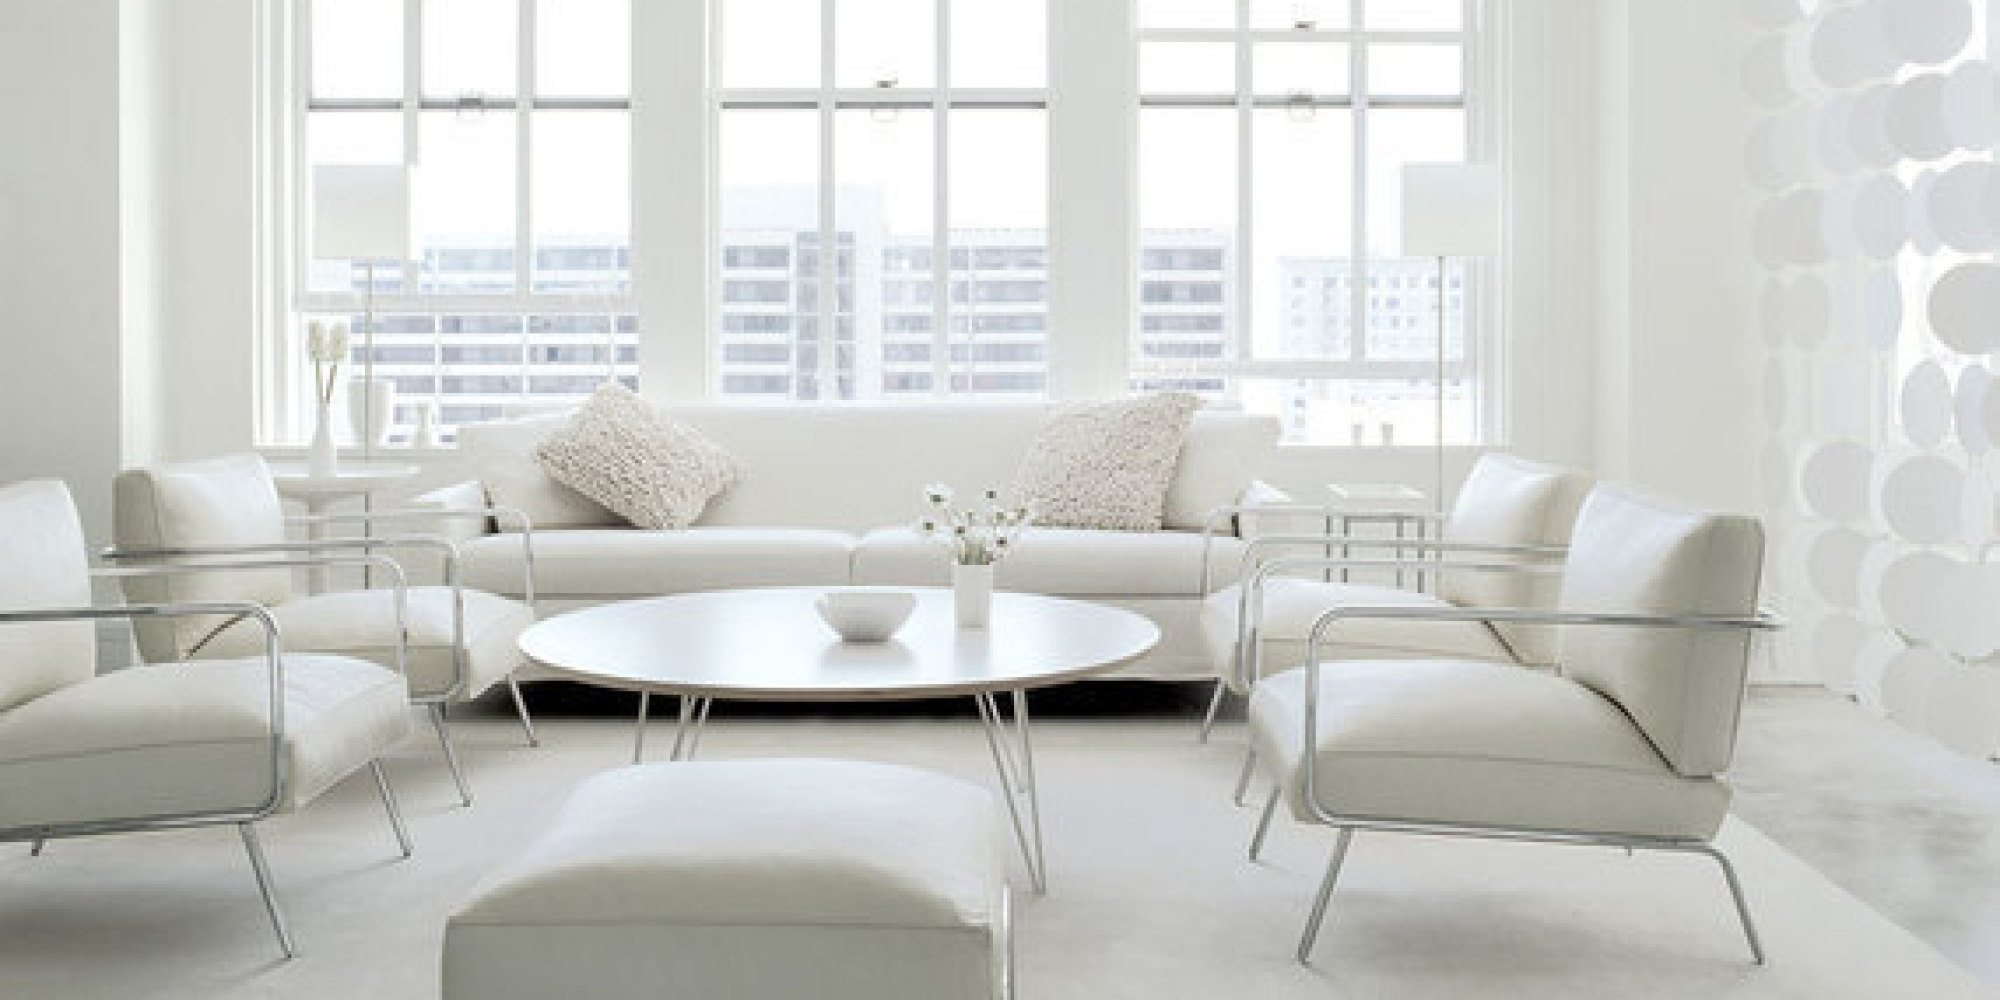 7 All White Interiors that Deliver a Fresh Look  HuffPost